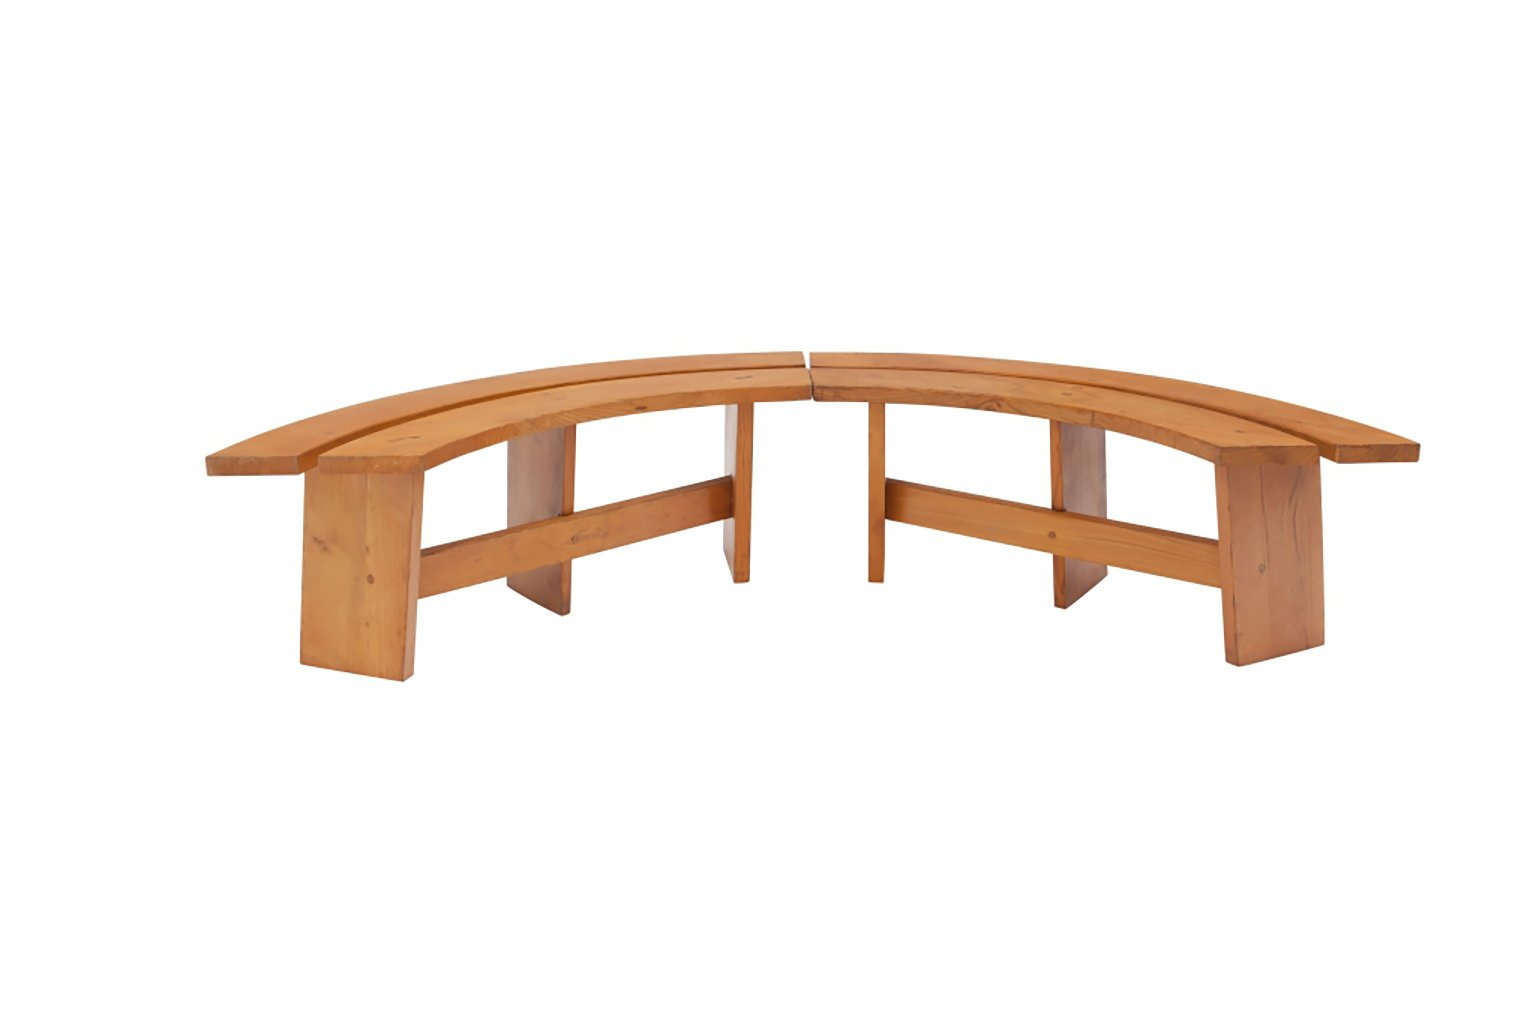 Curved Benches By Pierre Chapo 1960s Set Of 4 For Sale At Pamono